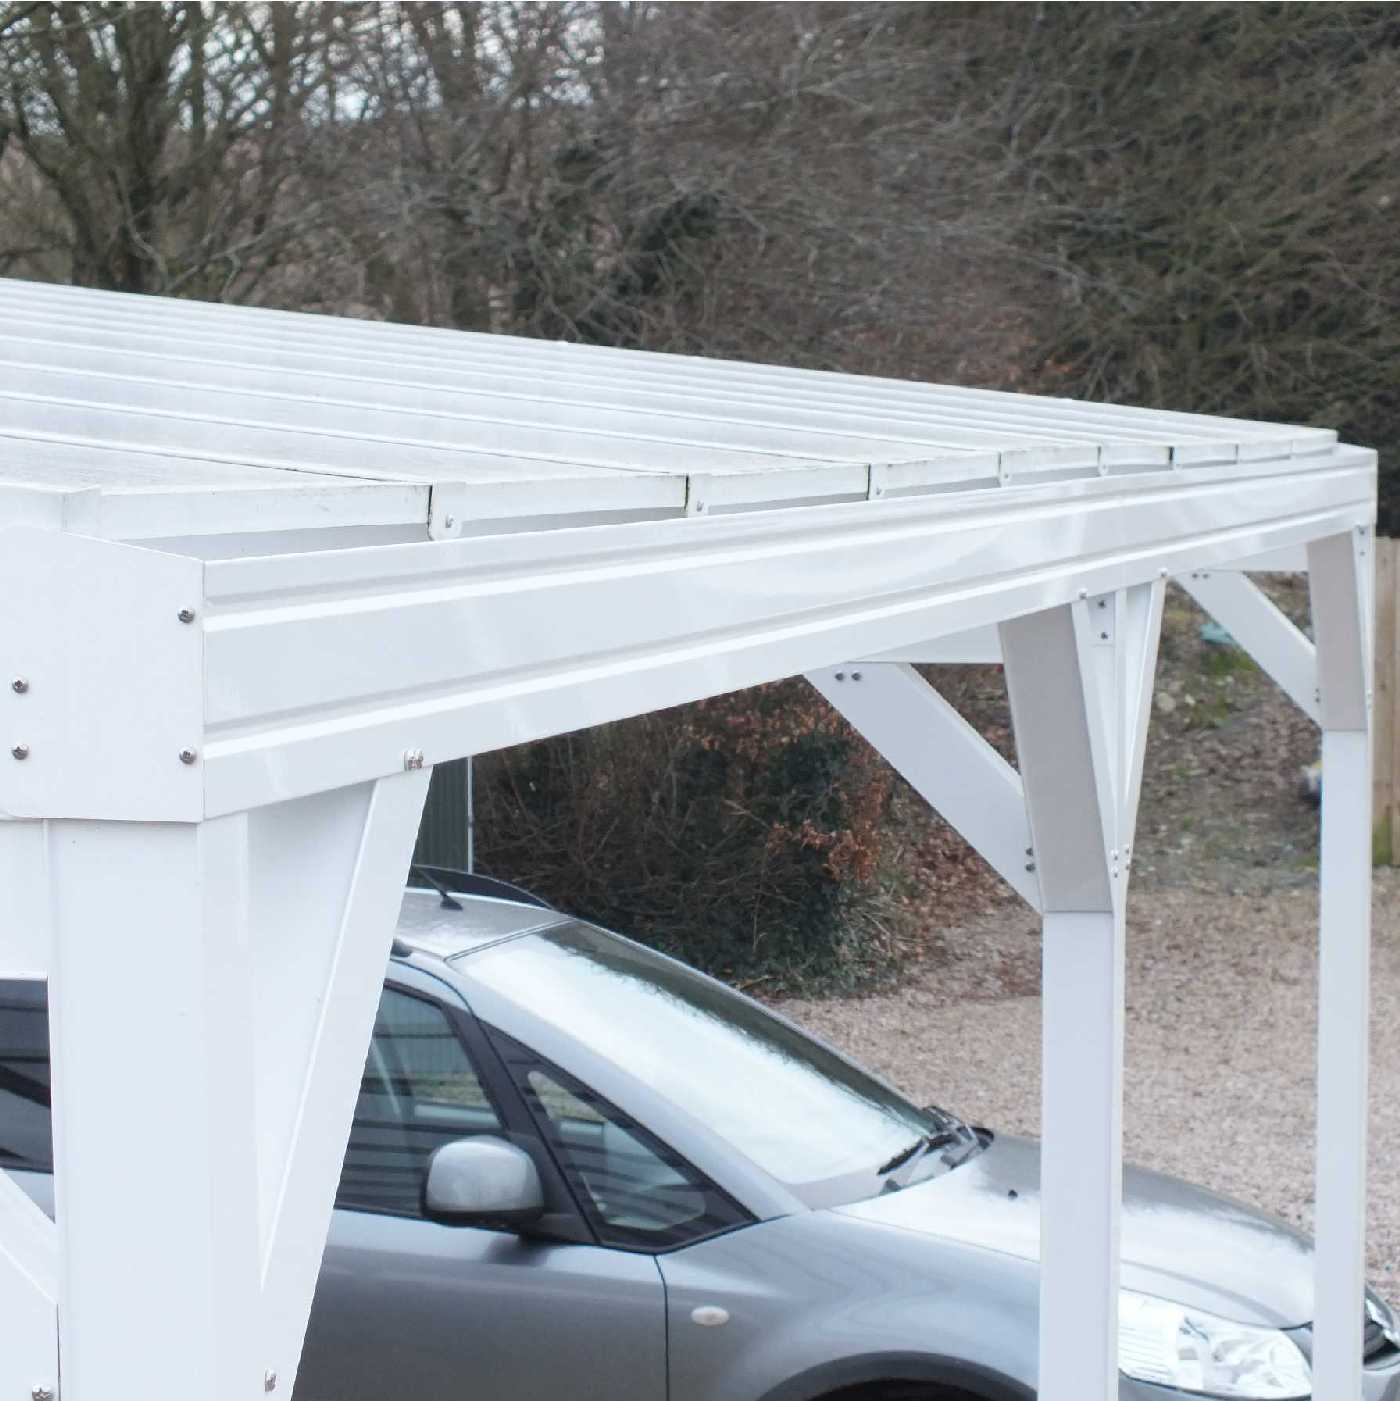 Omega Smart Free-Standing, MonoPitch Roof Canopy with 16mm Polycarbonate Glazing - 7.4m (W) x 3.0m (P), (8) Supporting Posts from Omega Build